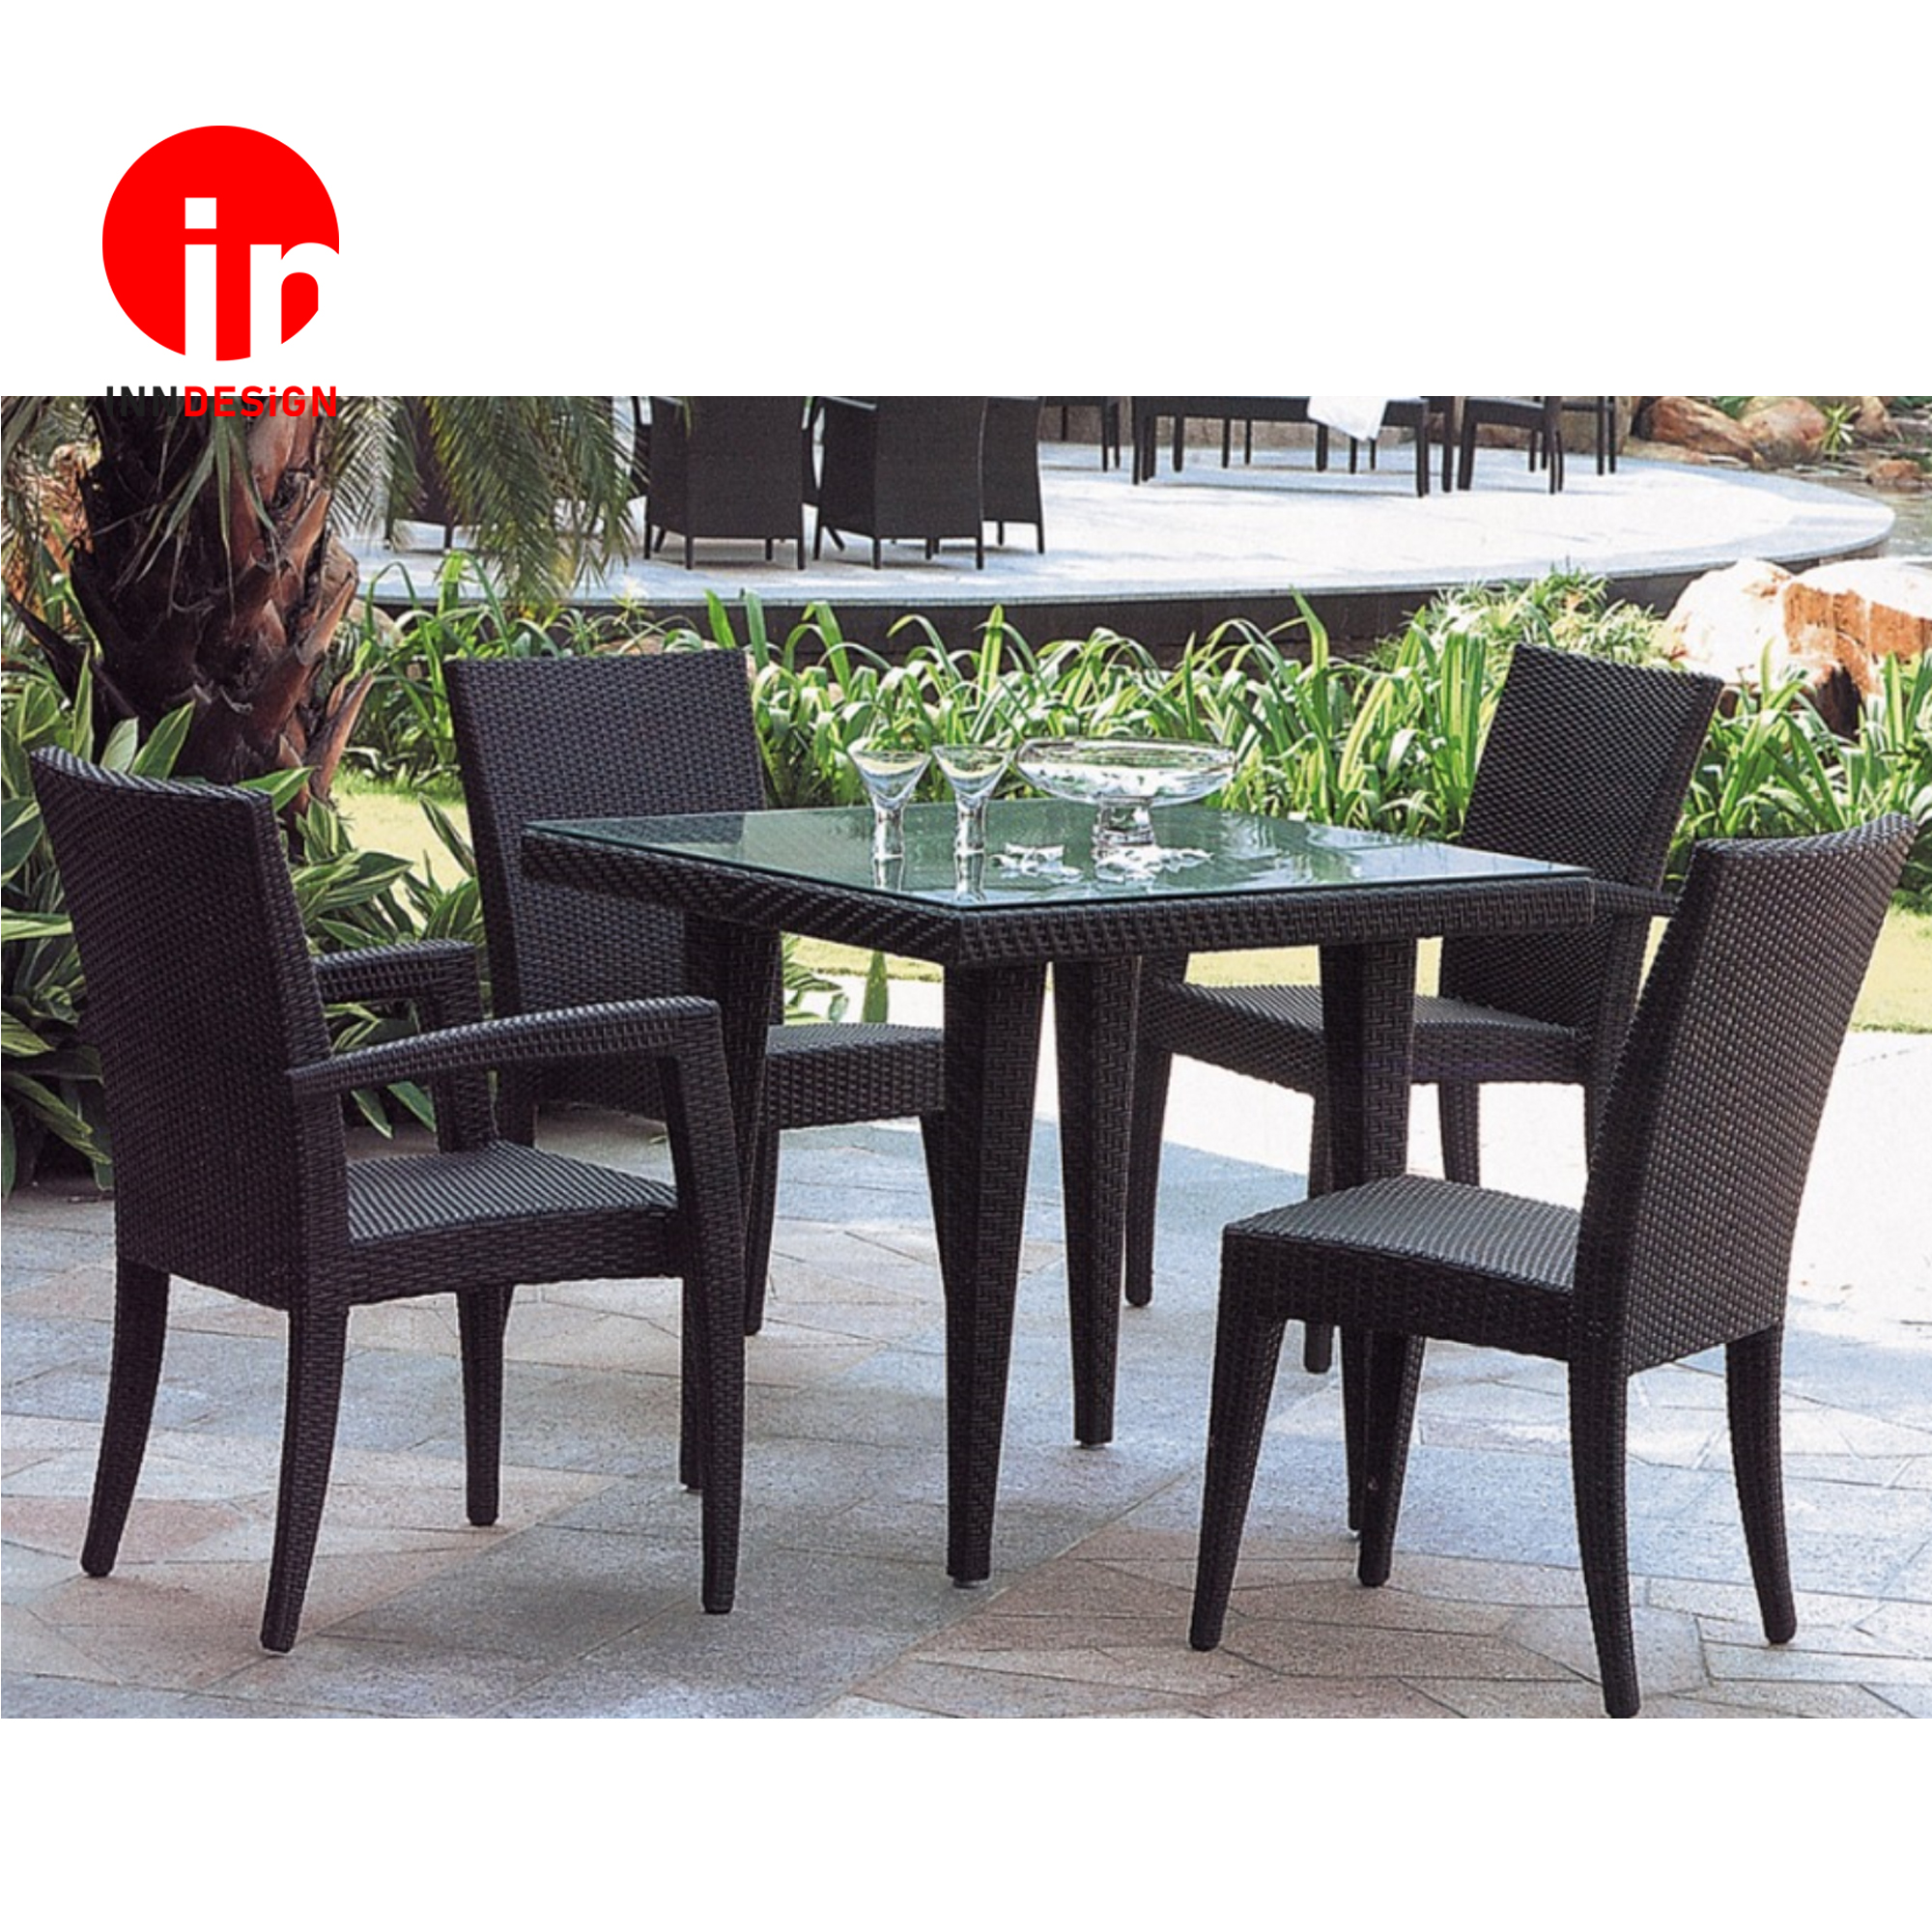 1+4 Dining Set / Outdoor Table /Coffee Table / Lounge Set ( Black) (Free Delivery and Installation)